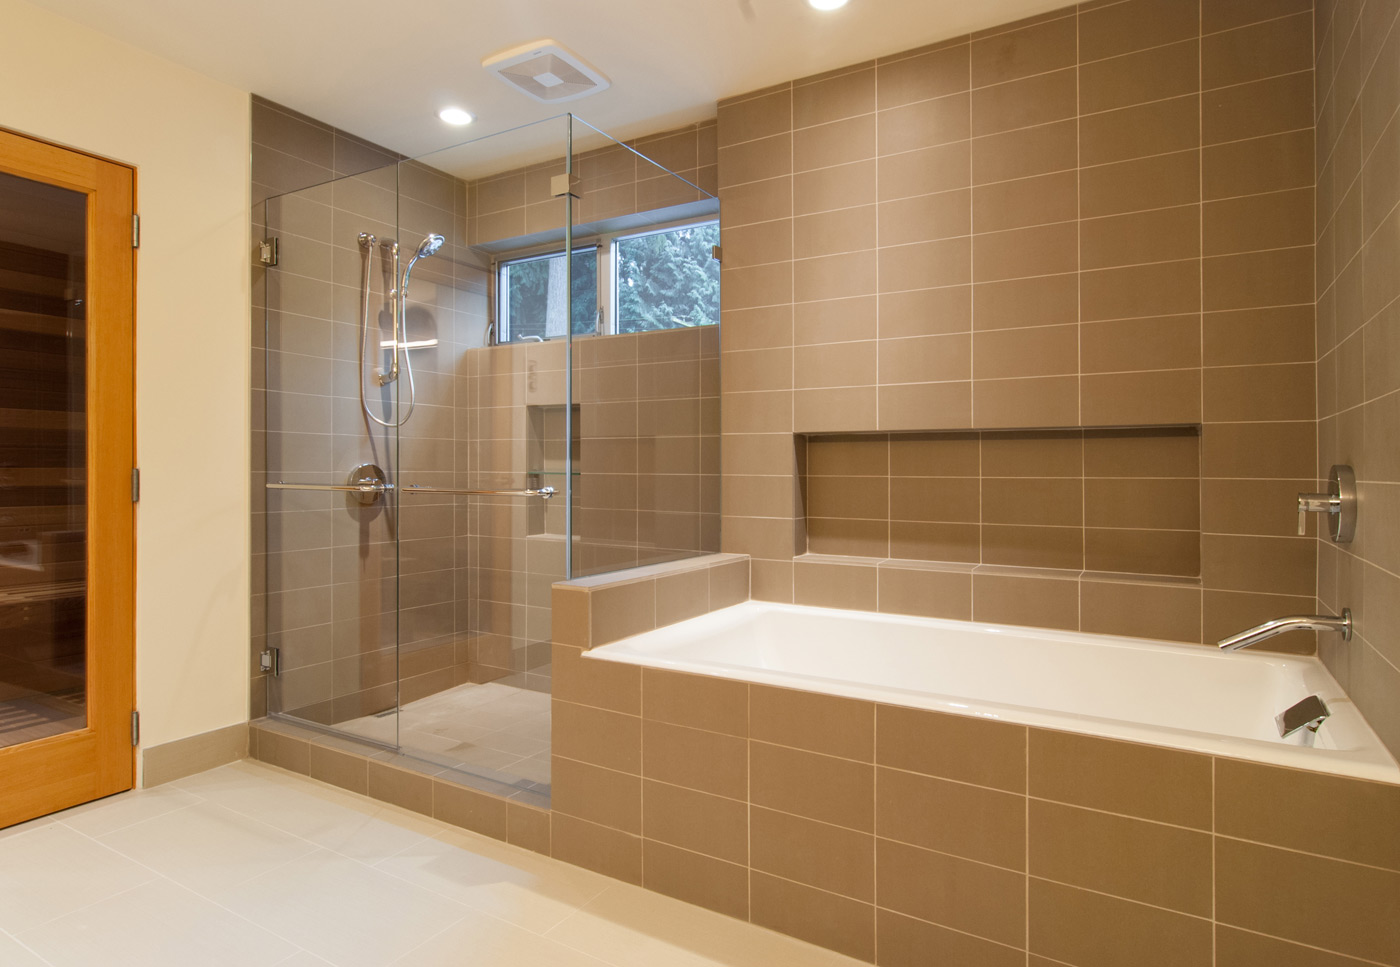 Lessons in tile build blog for Bathroom tiles images gallery